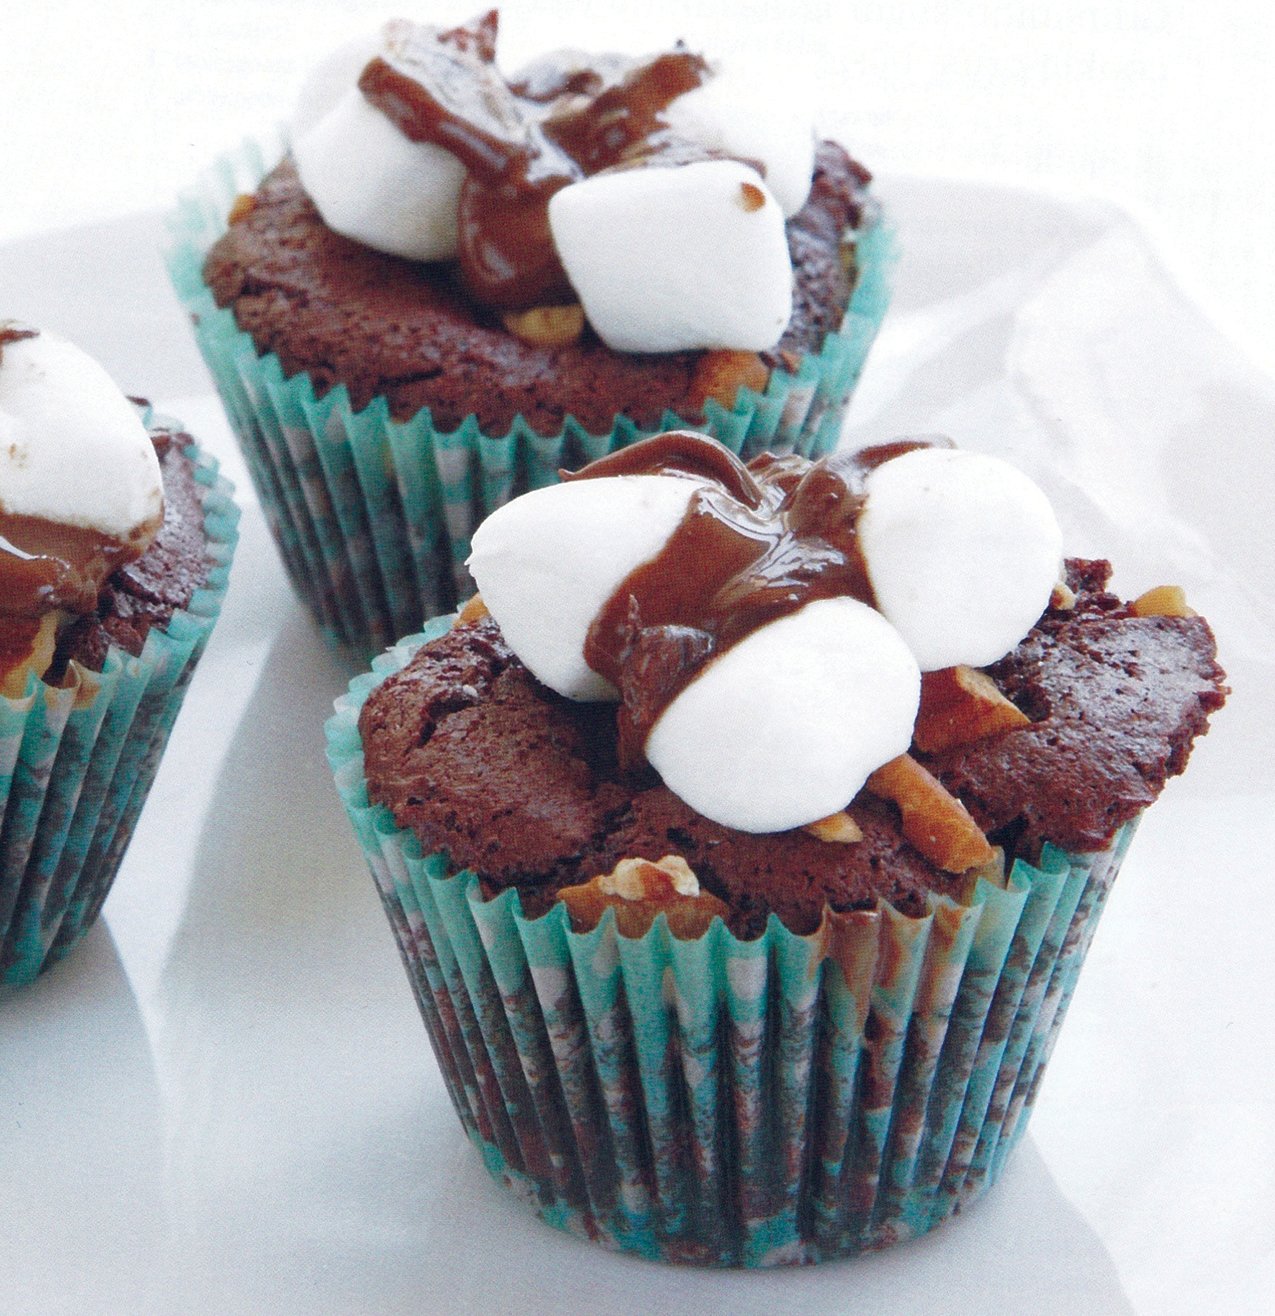 Mississippi Mud Baby Cakes